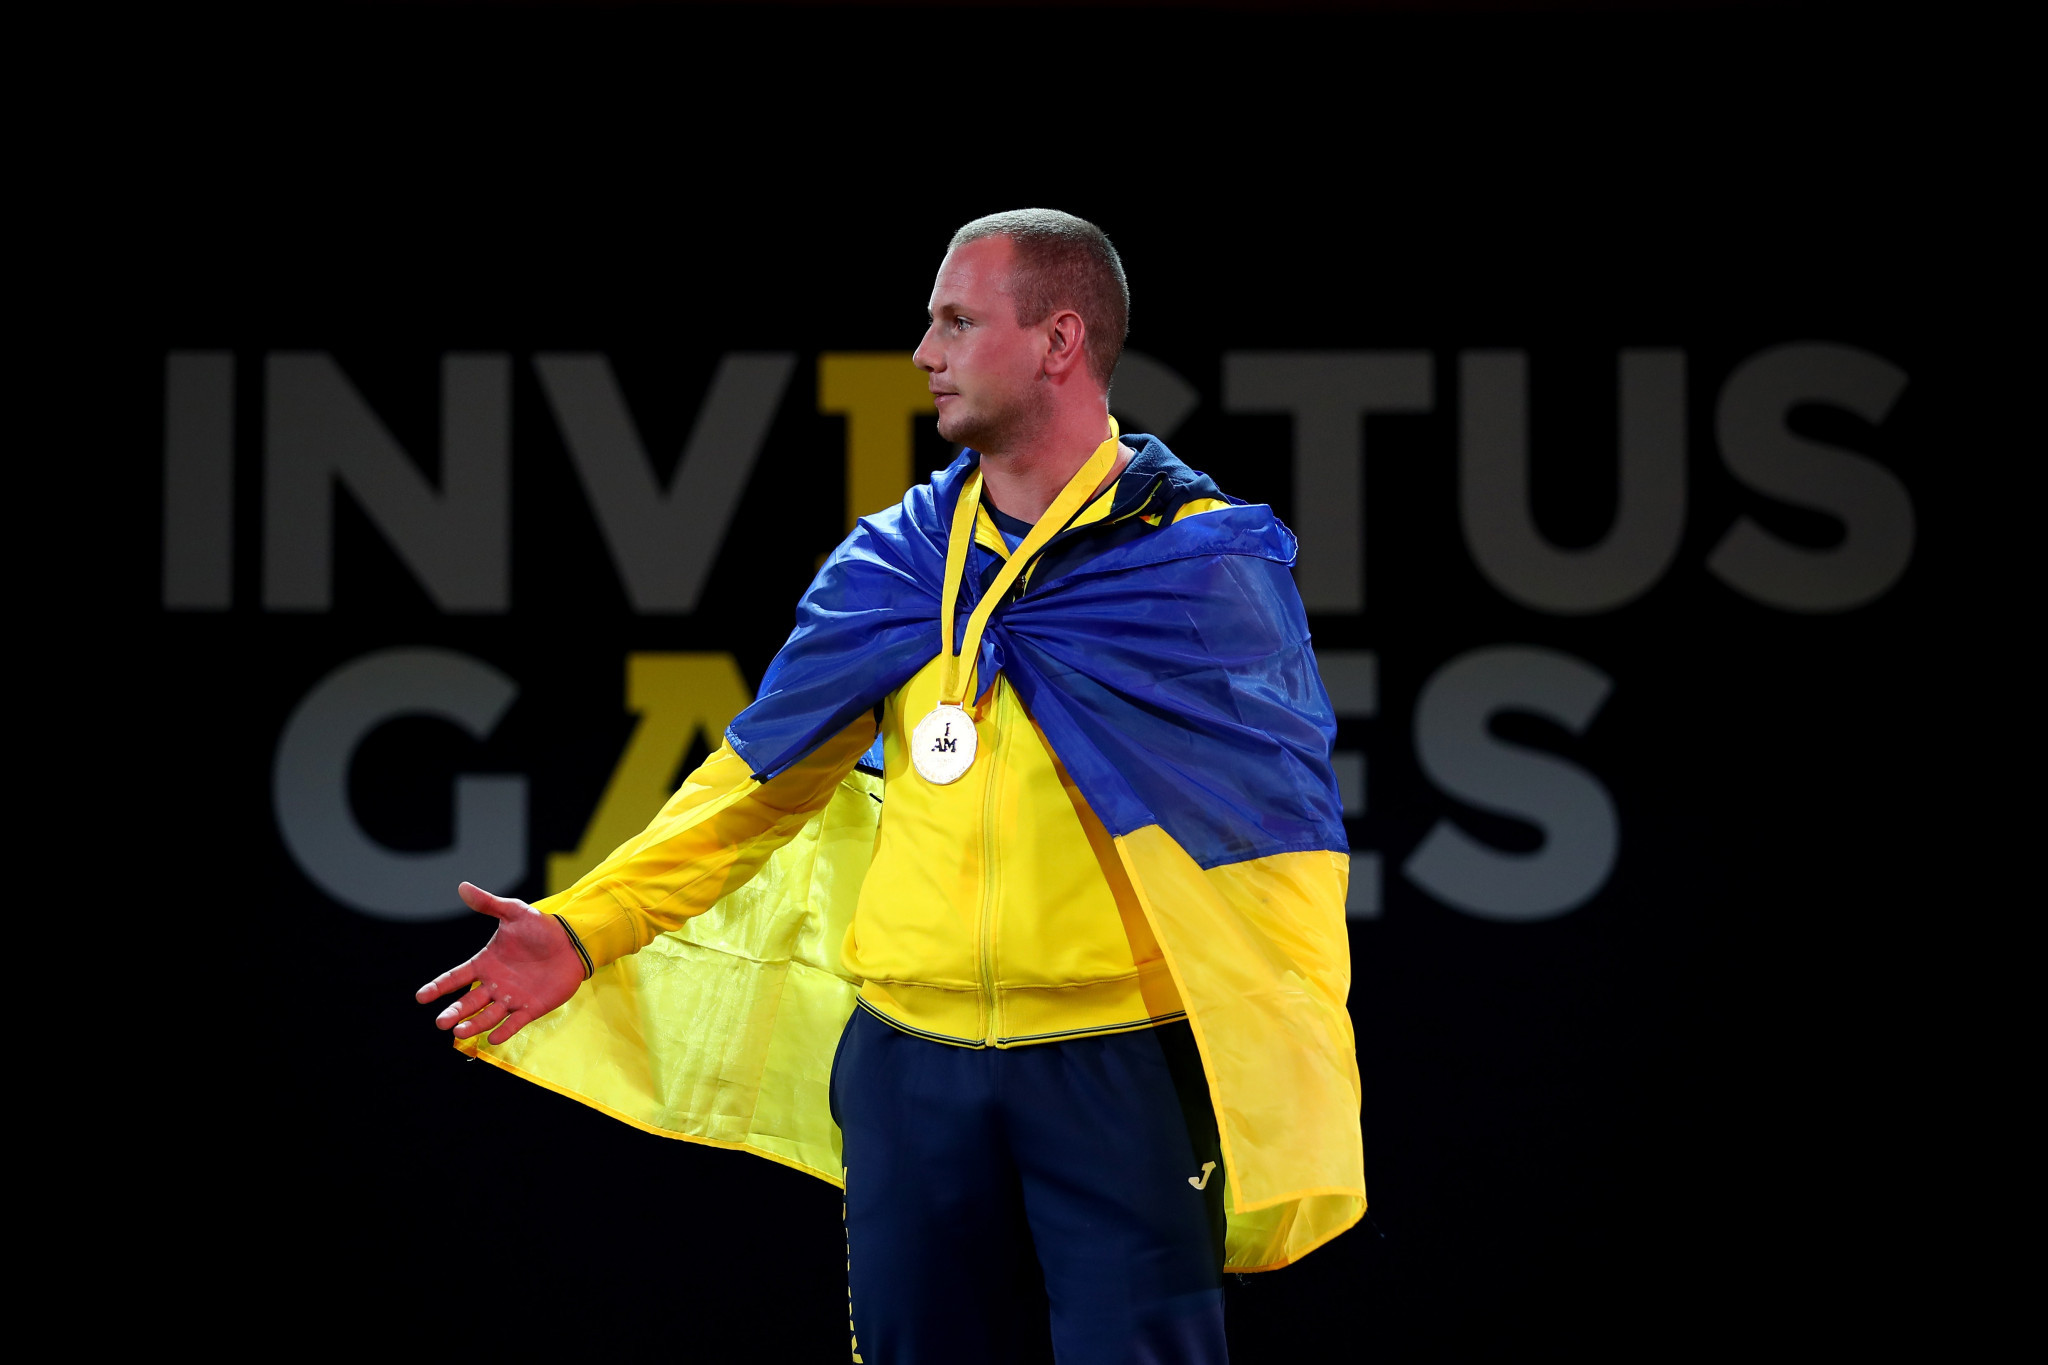 Ukraine and Great Britain claim powerlifting golds as Invictus Games continue